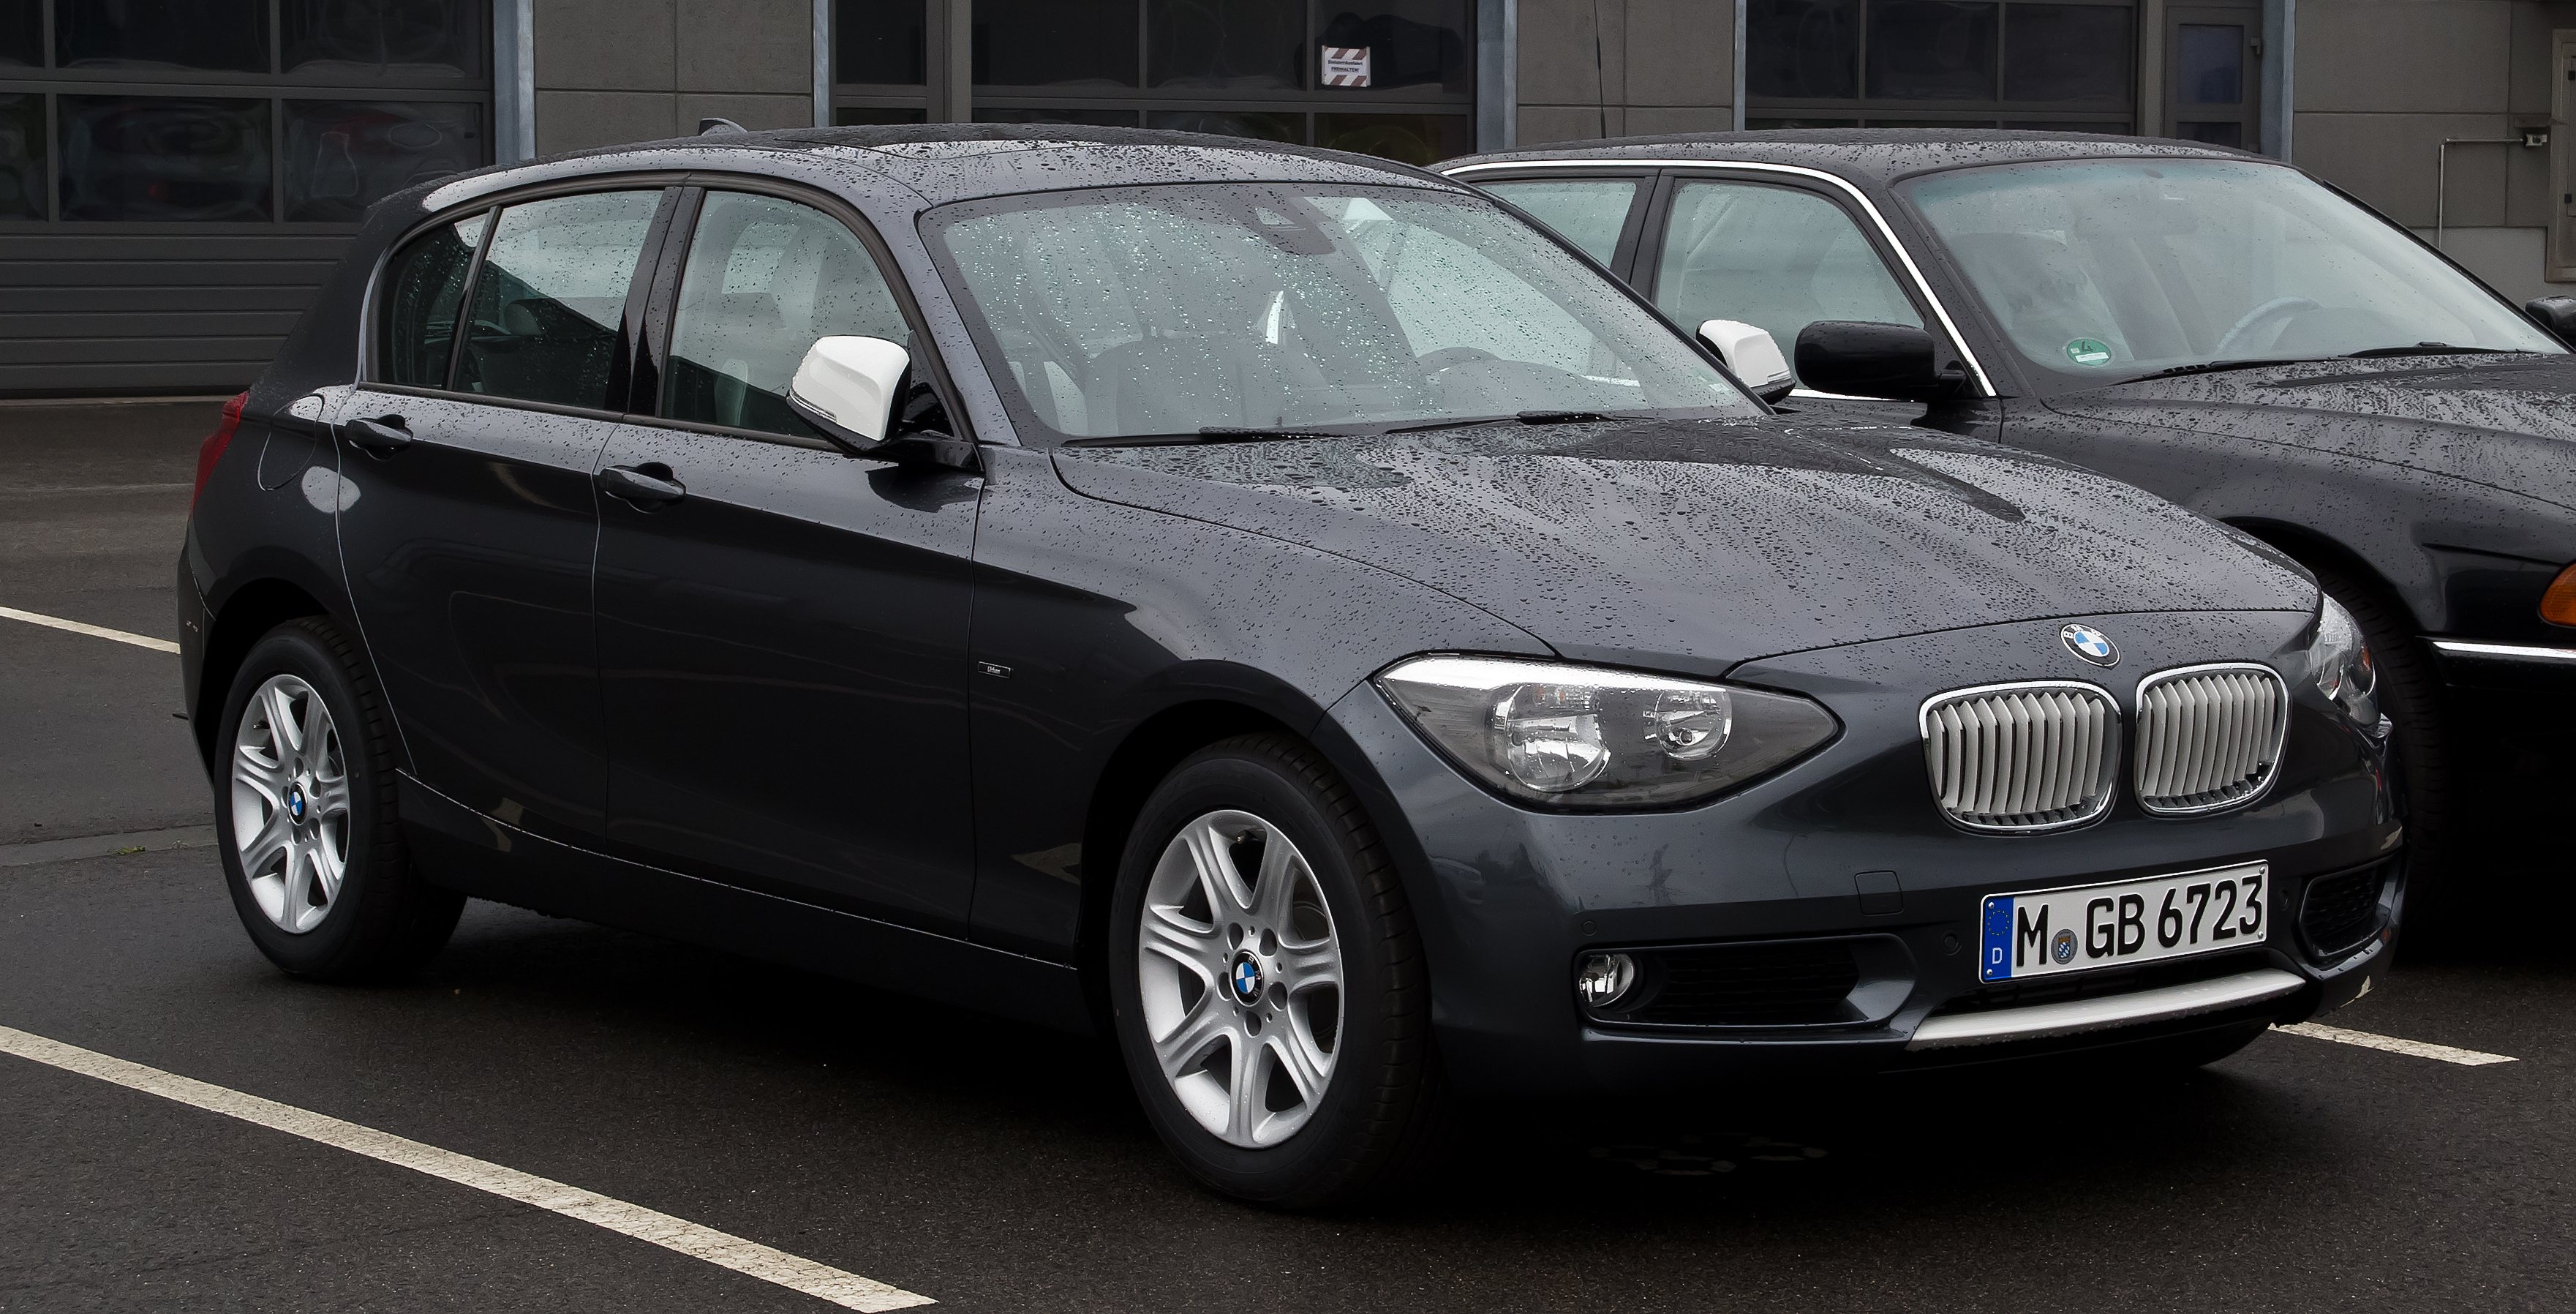 file bmw 116i urban line f20 frontansicht 5 mai 2012 d wikimedia commons. Black Bedroom Furniture Sets. Home Design Ideas